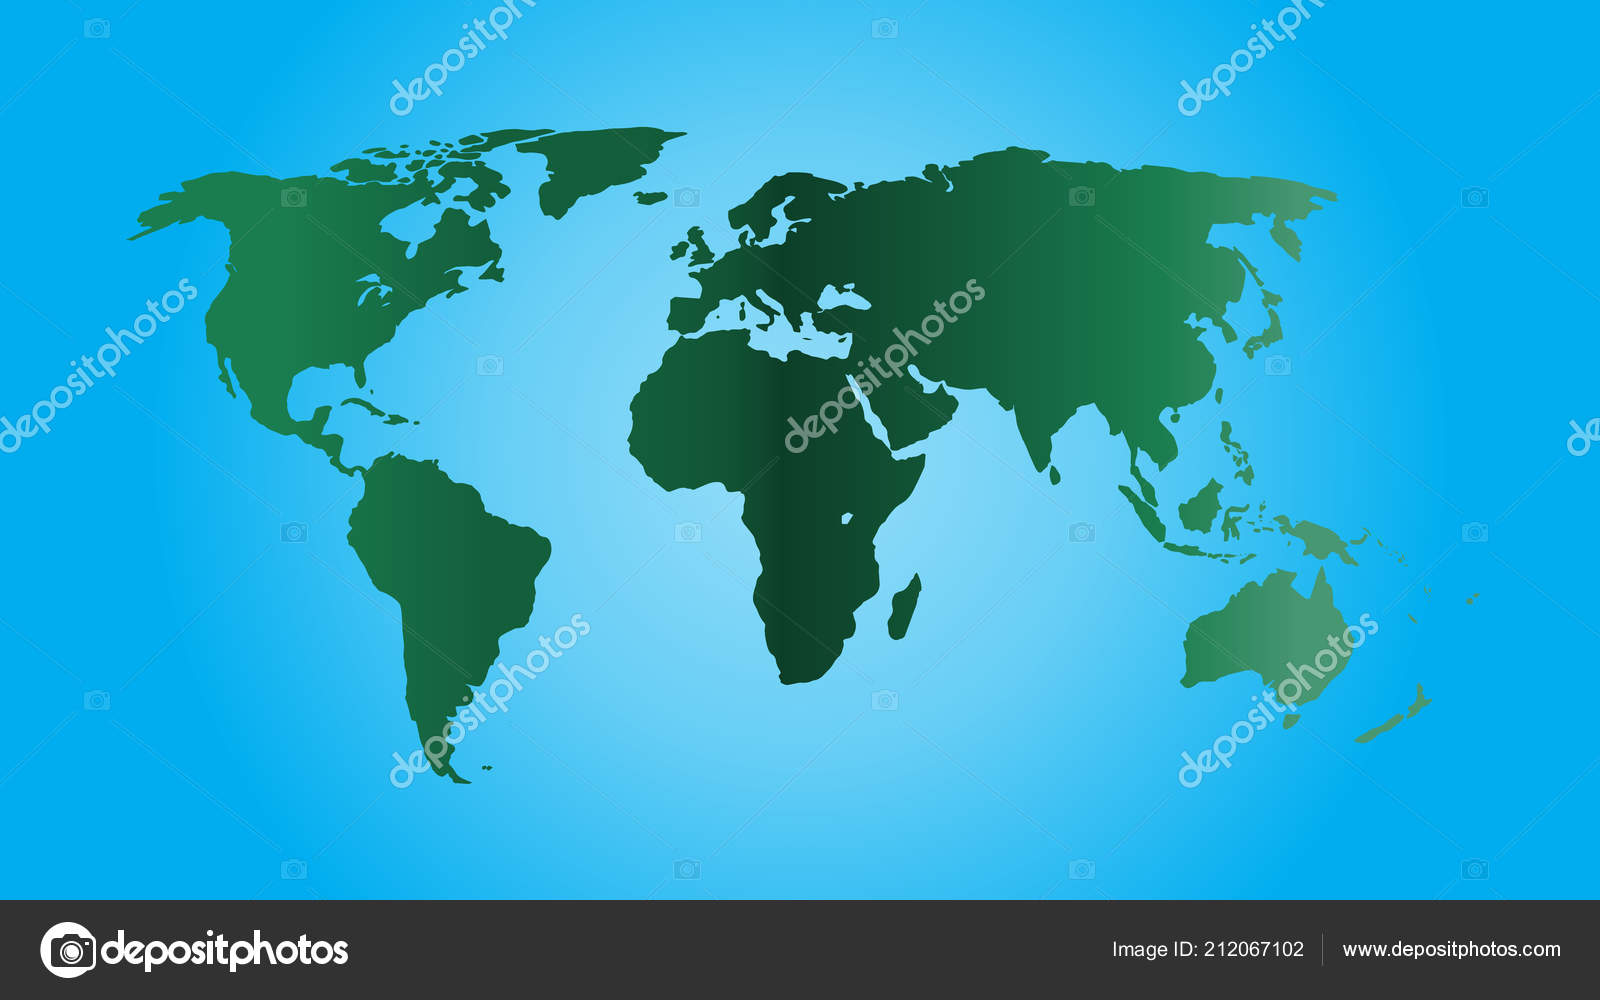 Flat Earth Map Download.World Map Vector Ecology Concept Green World Flat Earth Map Stock